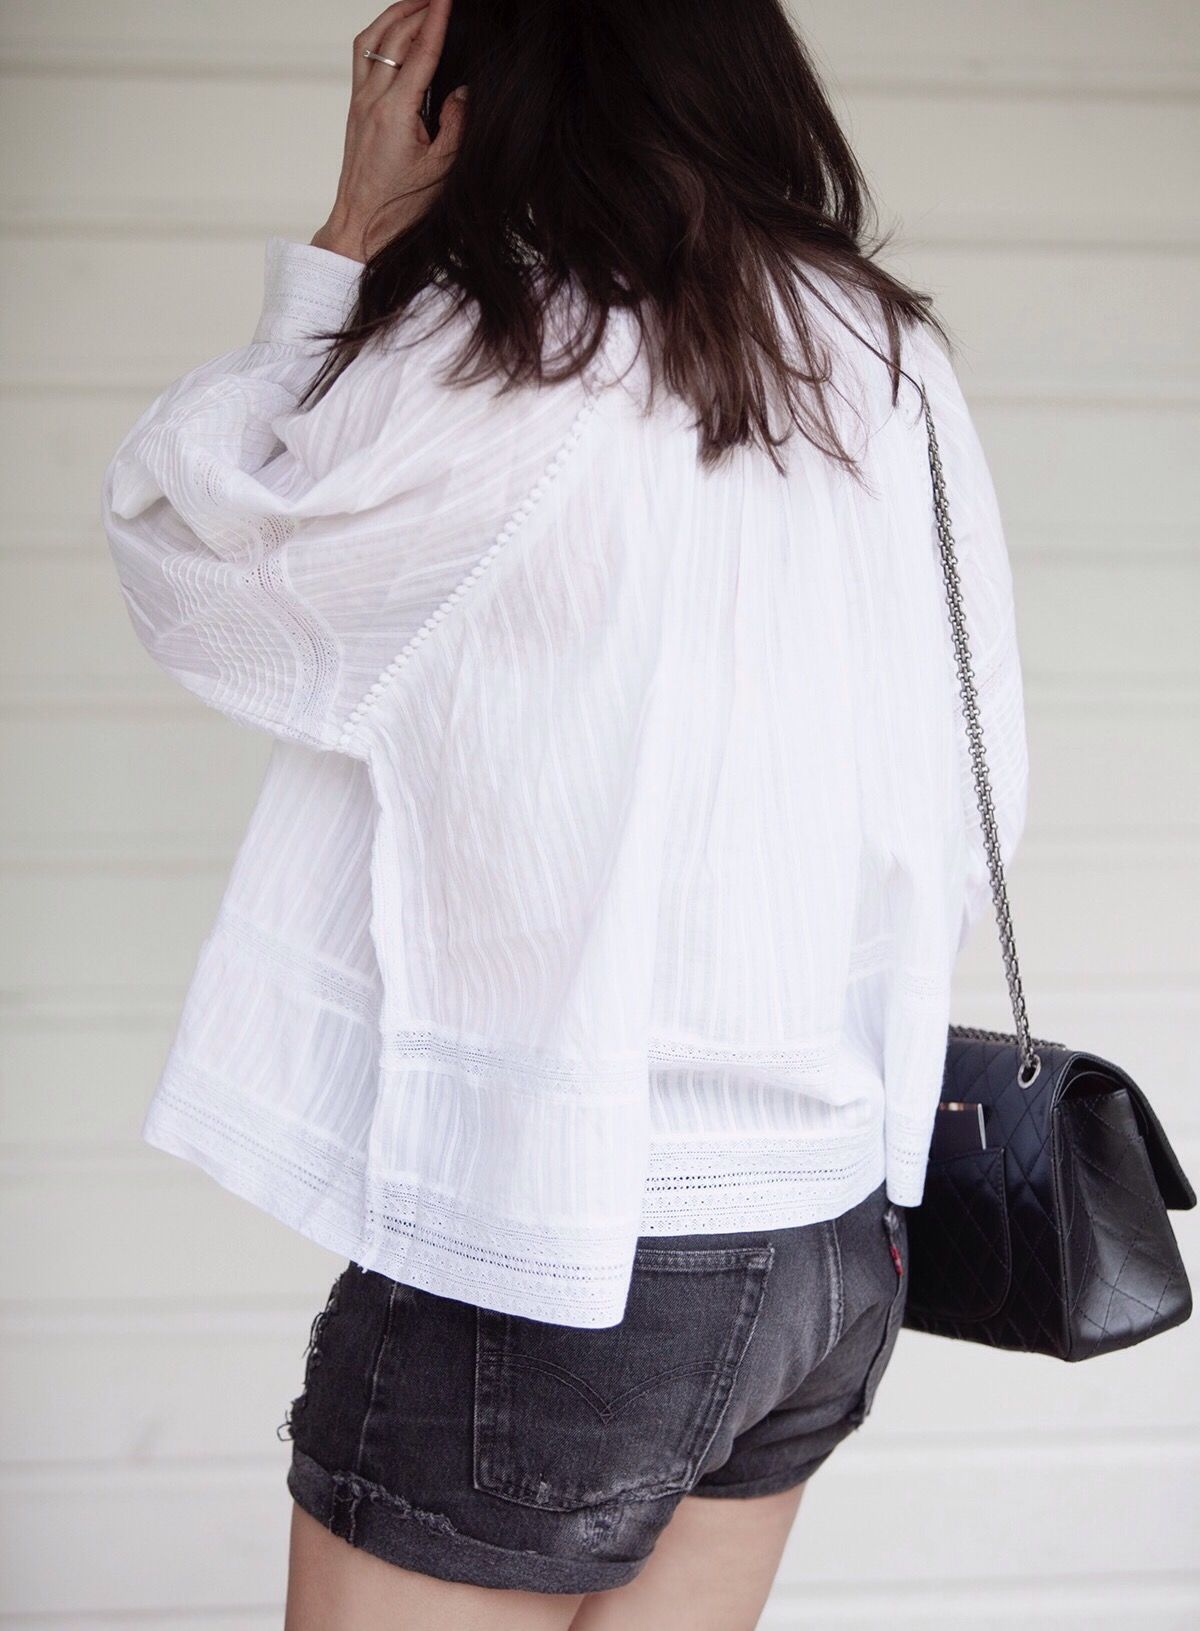 Zadig Voltaire top white skulls BlogForShops for Perfectlybasics.com streetstyle look of the day spring summer styling